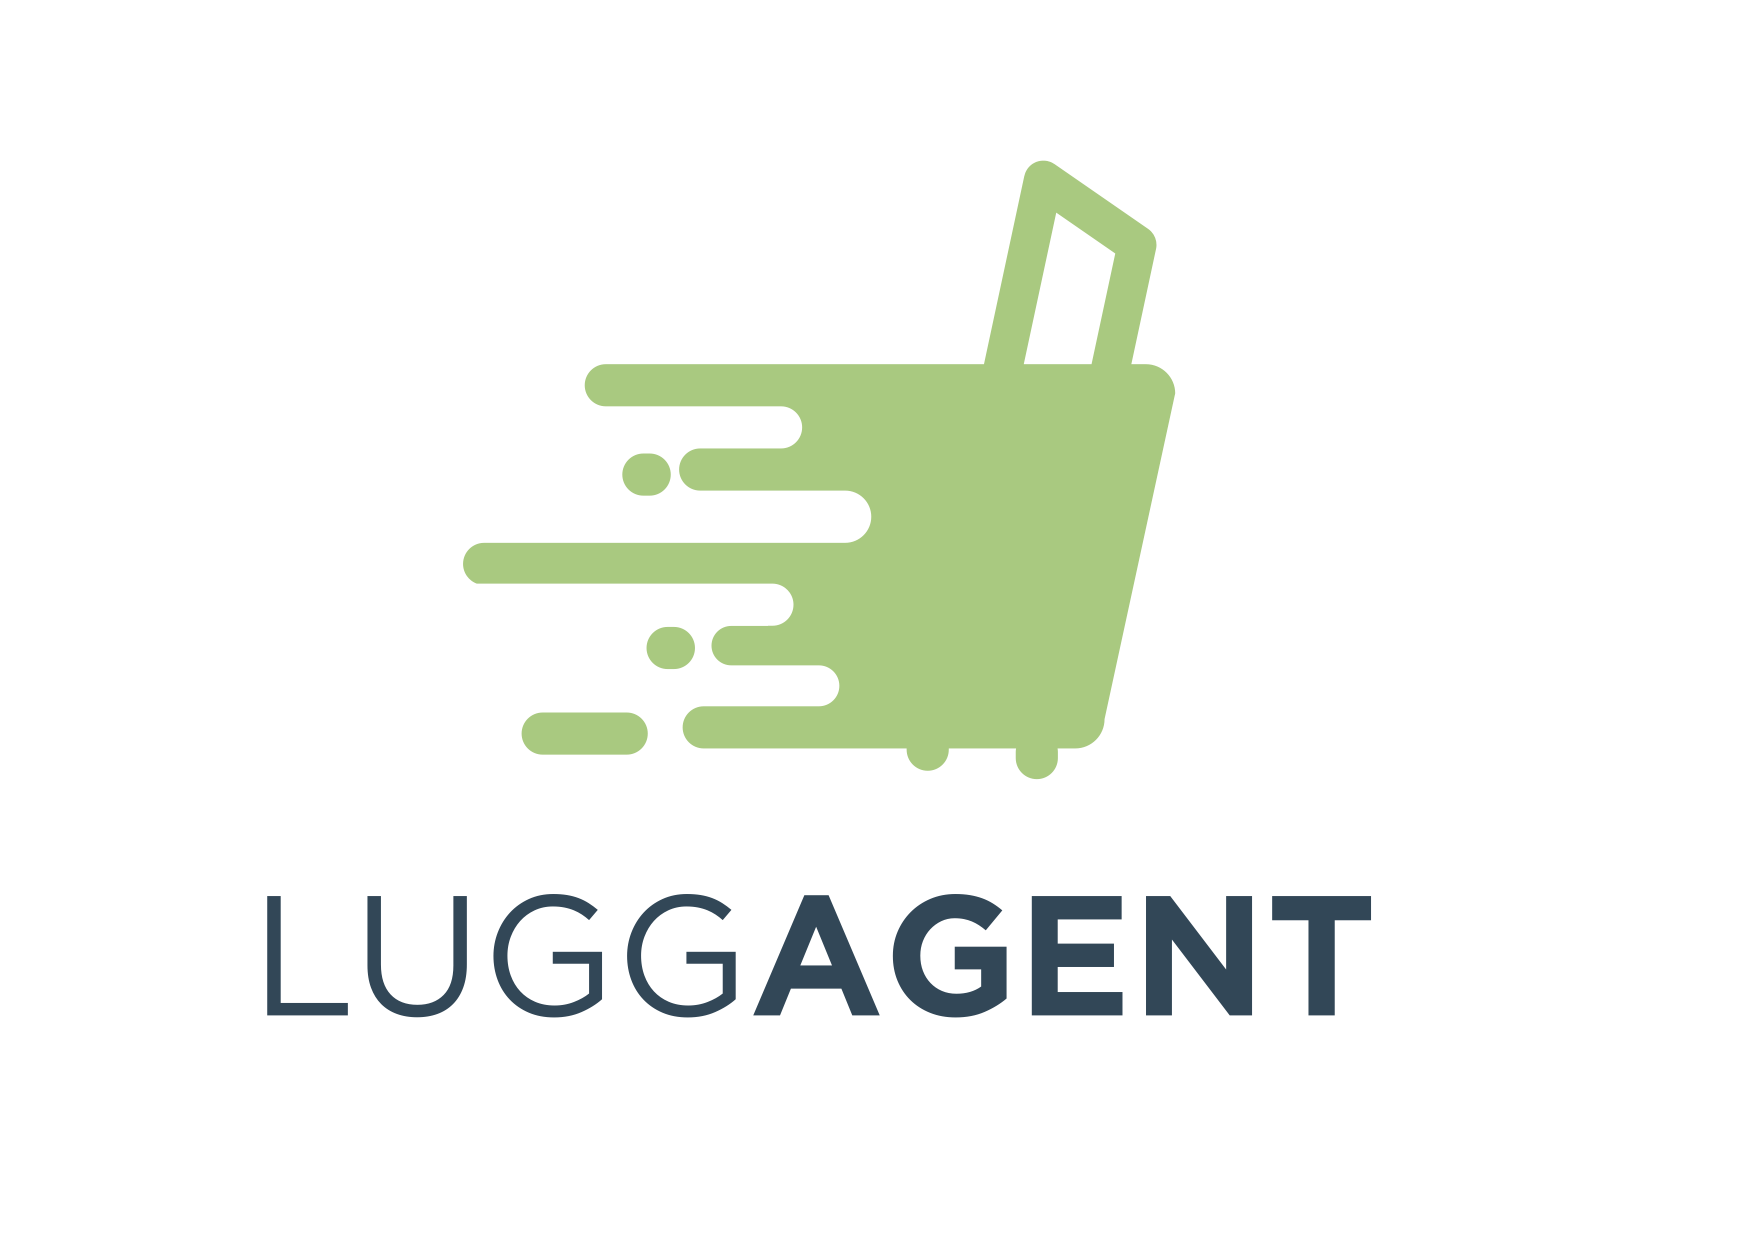 Luggagent.png